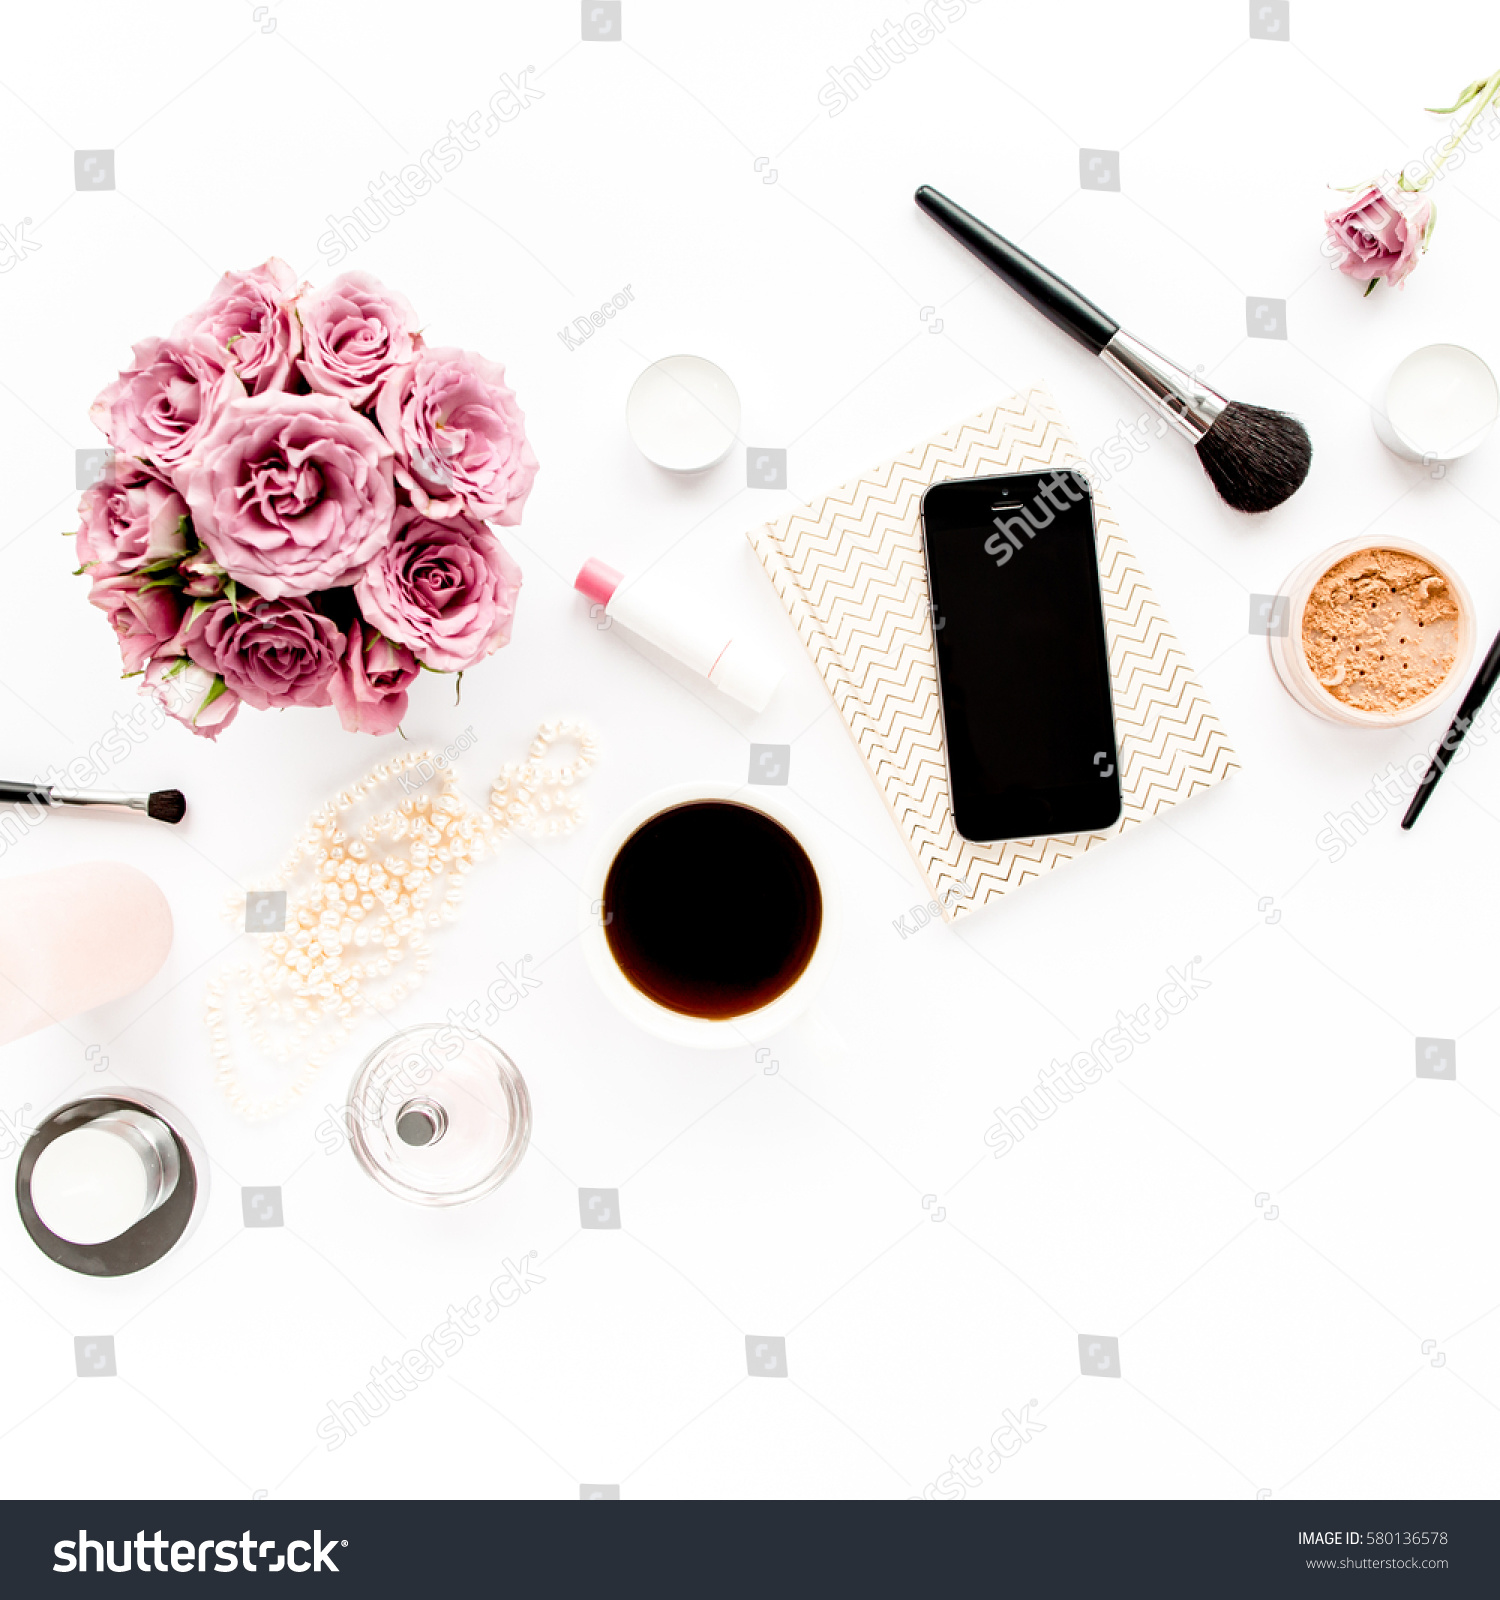 flower mother background on view roses desk frame depositphotos feminine with petals top pink women wooden workspace photo stock white and lay flat day s